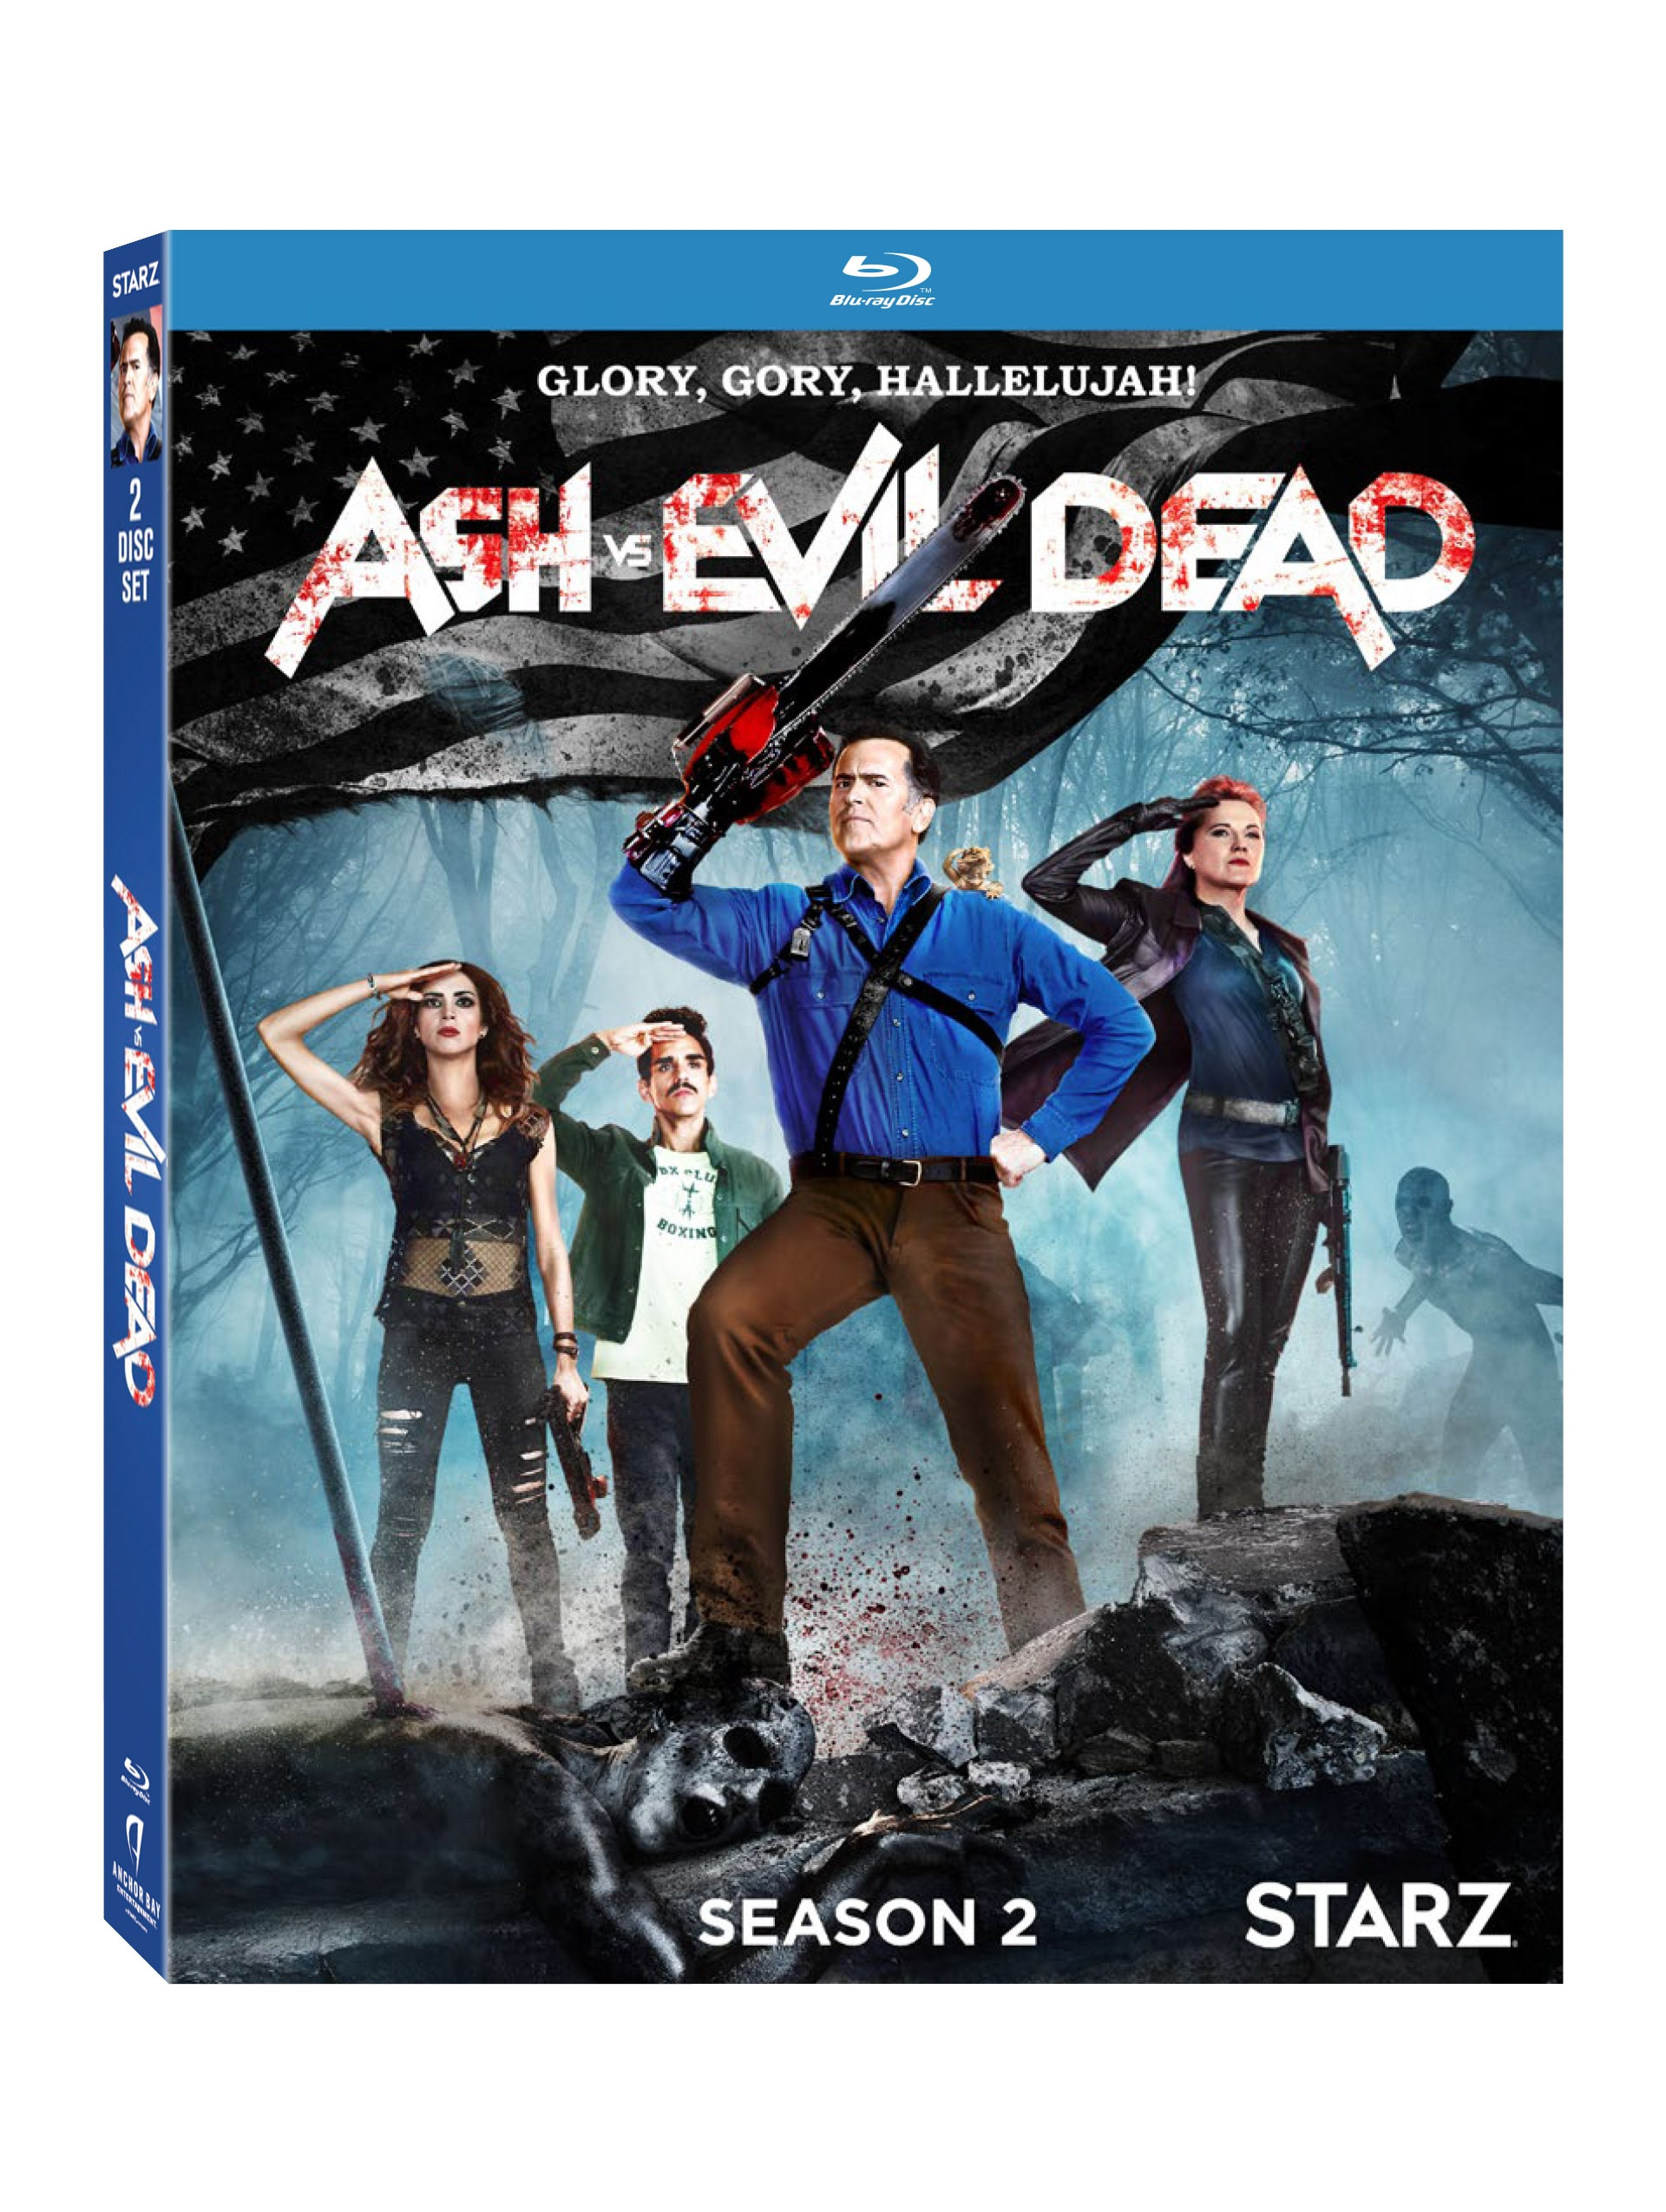 AVED 3D BD O CARD - Exclusive: The Cast and Crew of Ash vs. Evil Dead Discuss the Infamous Delta